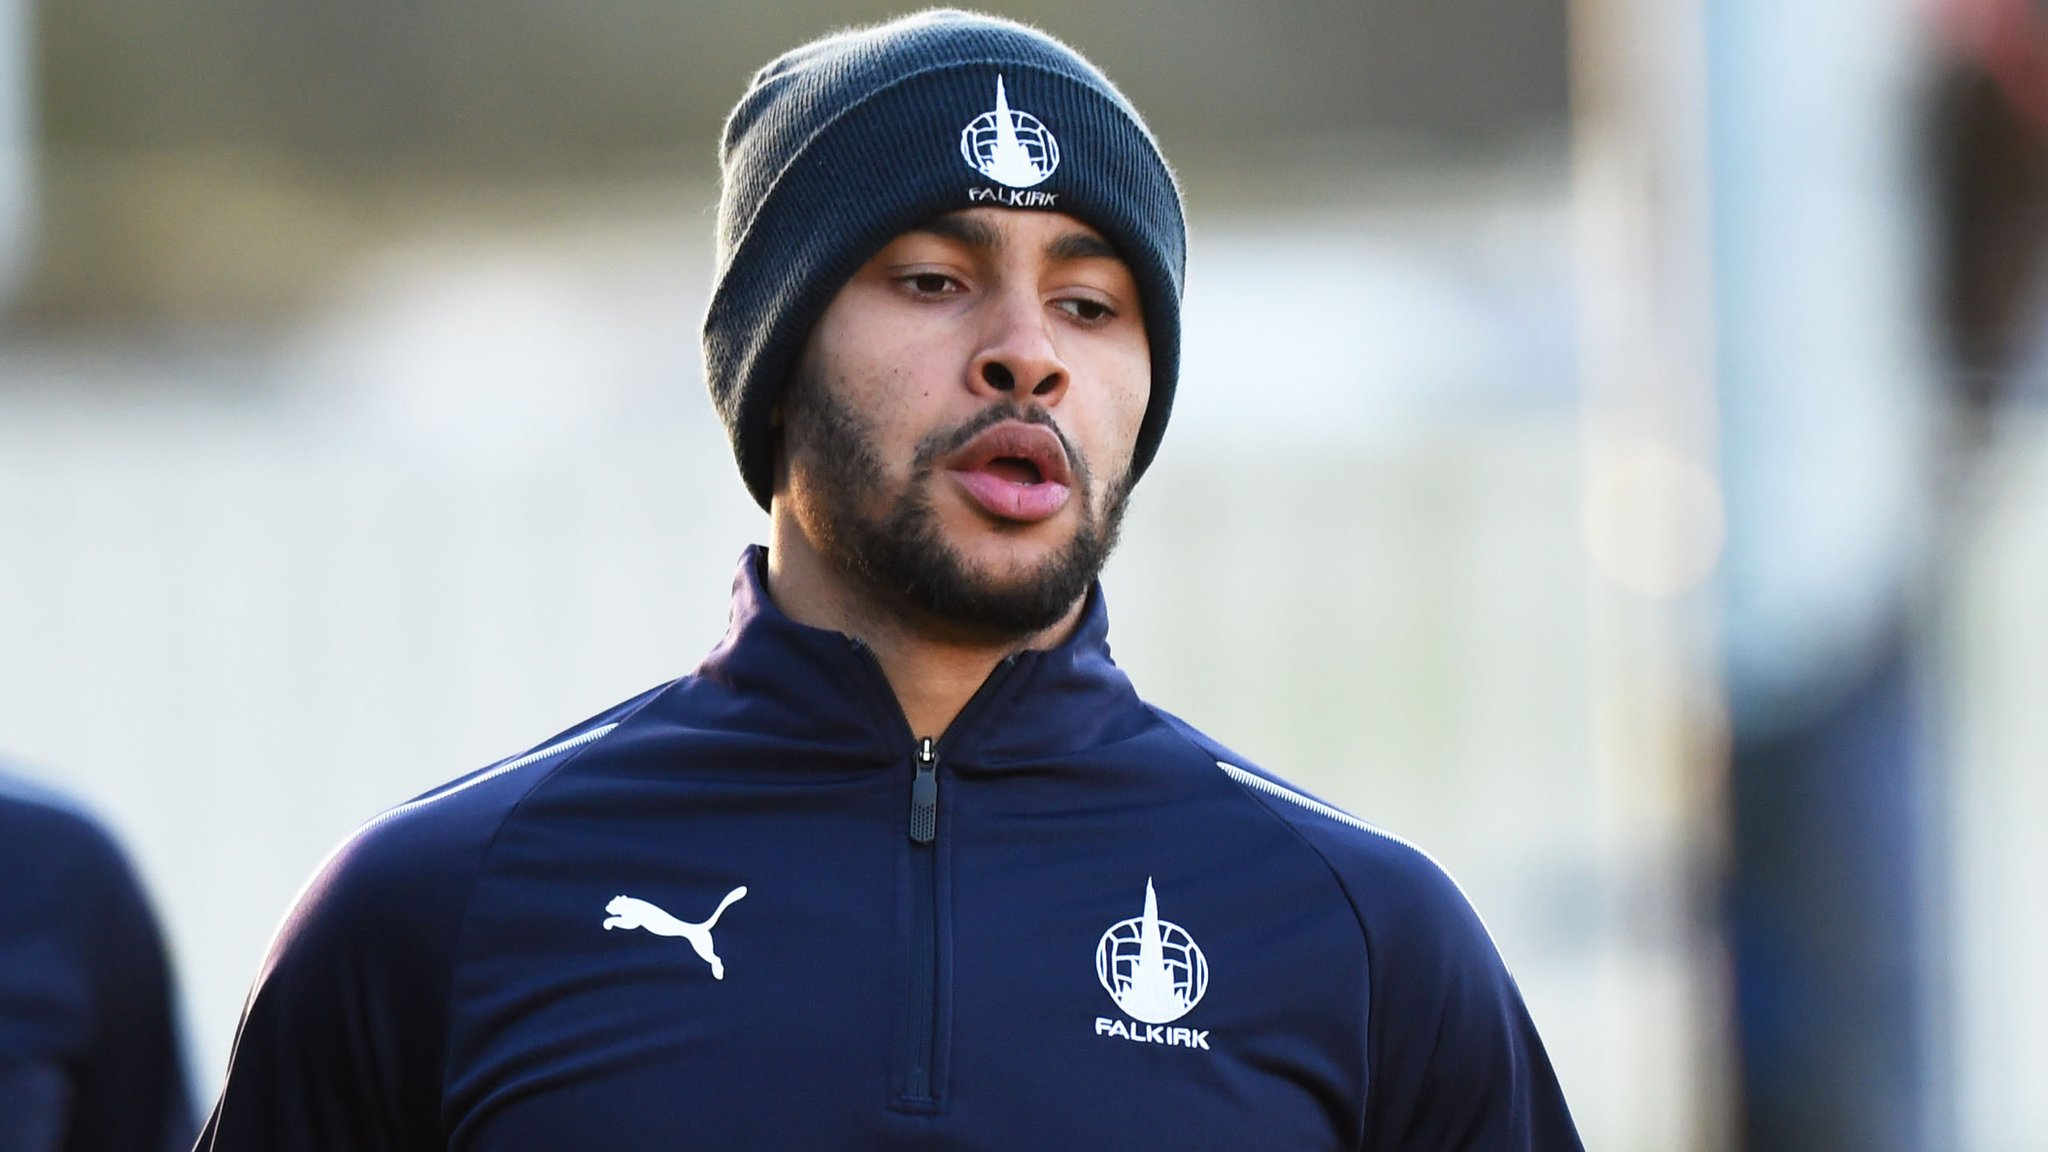 Dennon Lewis: Falkirk fan given police warning for abusing striker